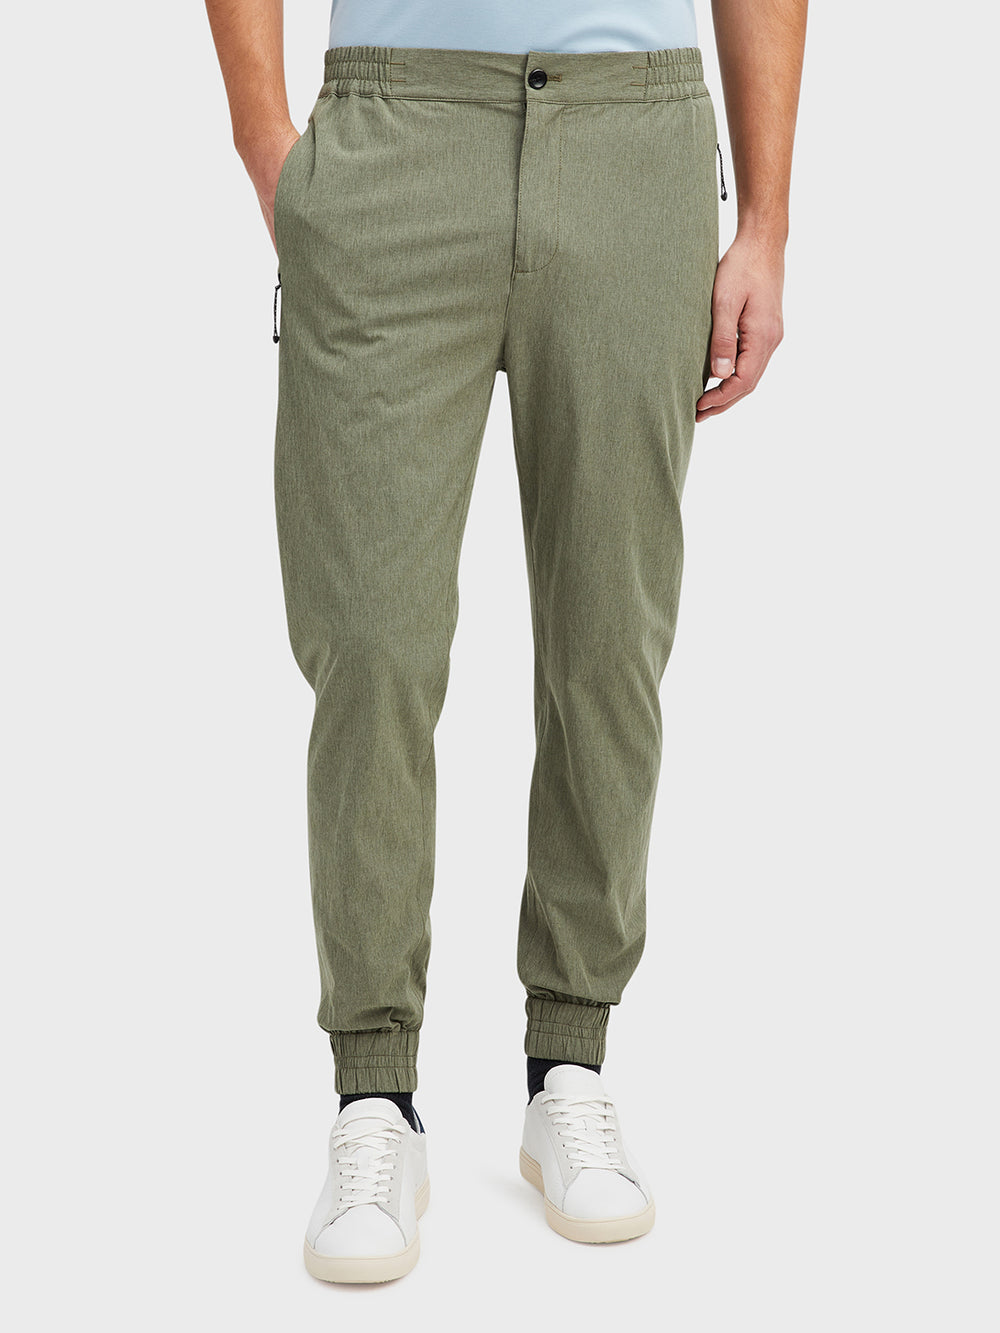 Green Heather Rockland Jogger Pants Men's polyester pants ONS Clothing